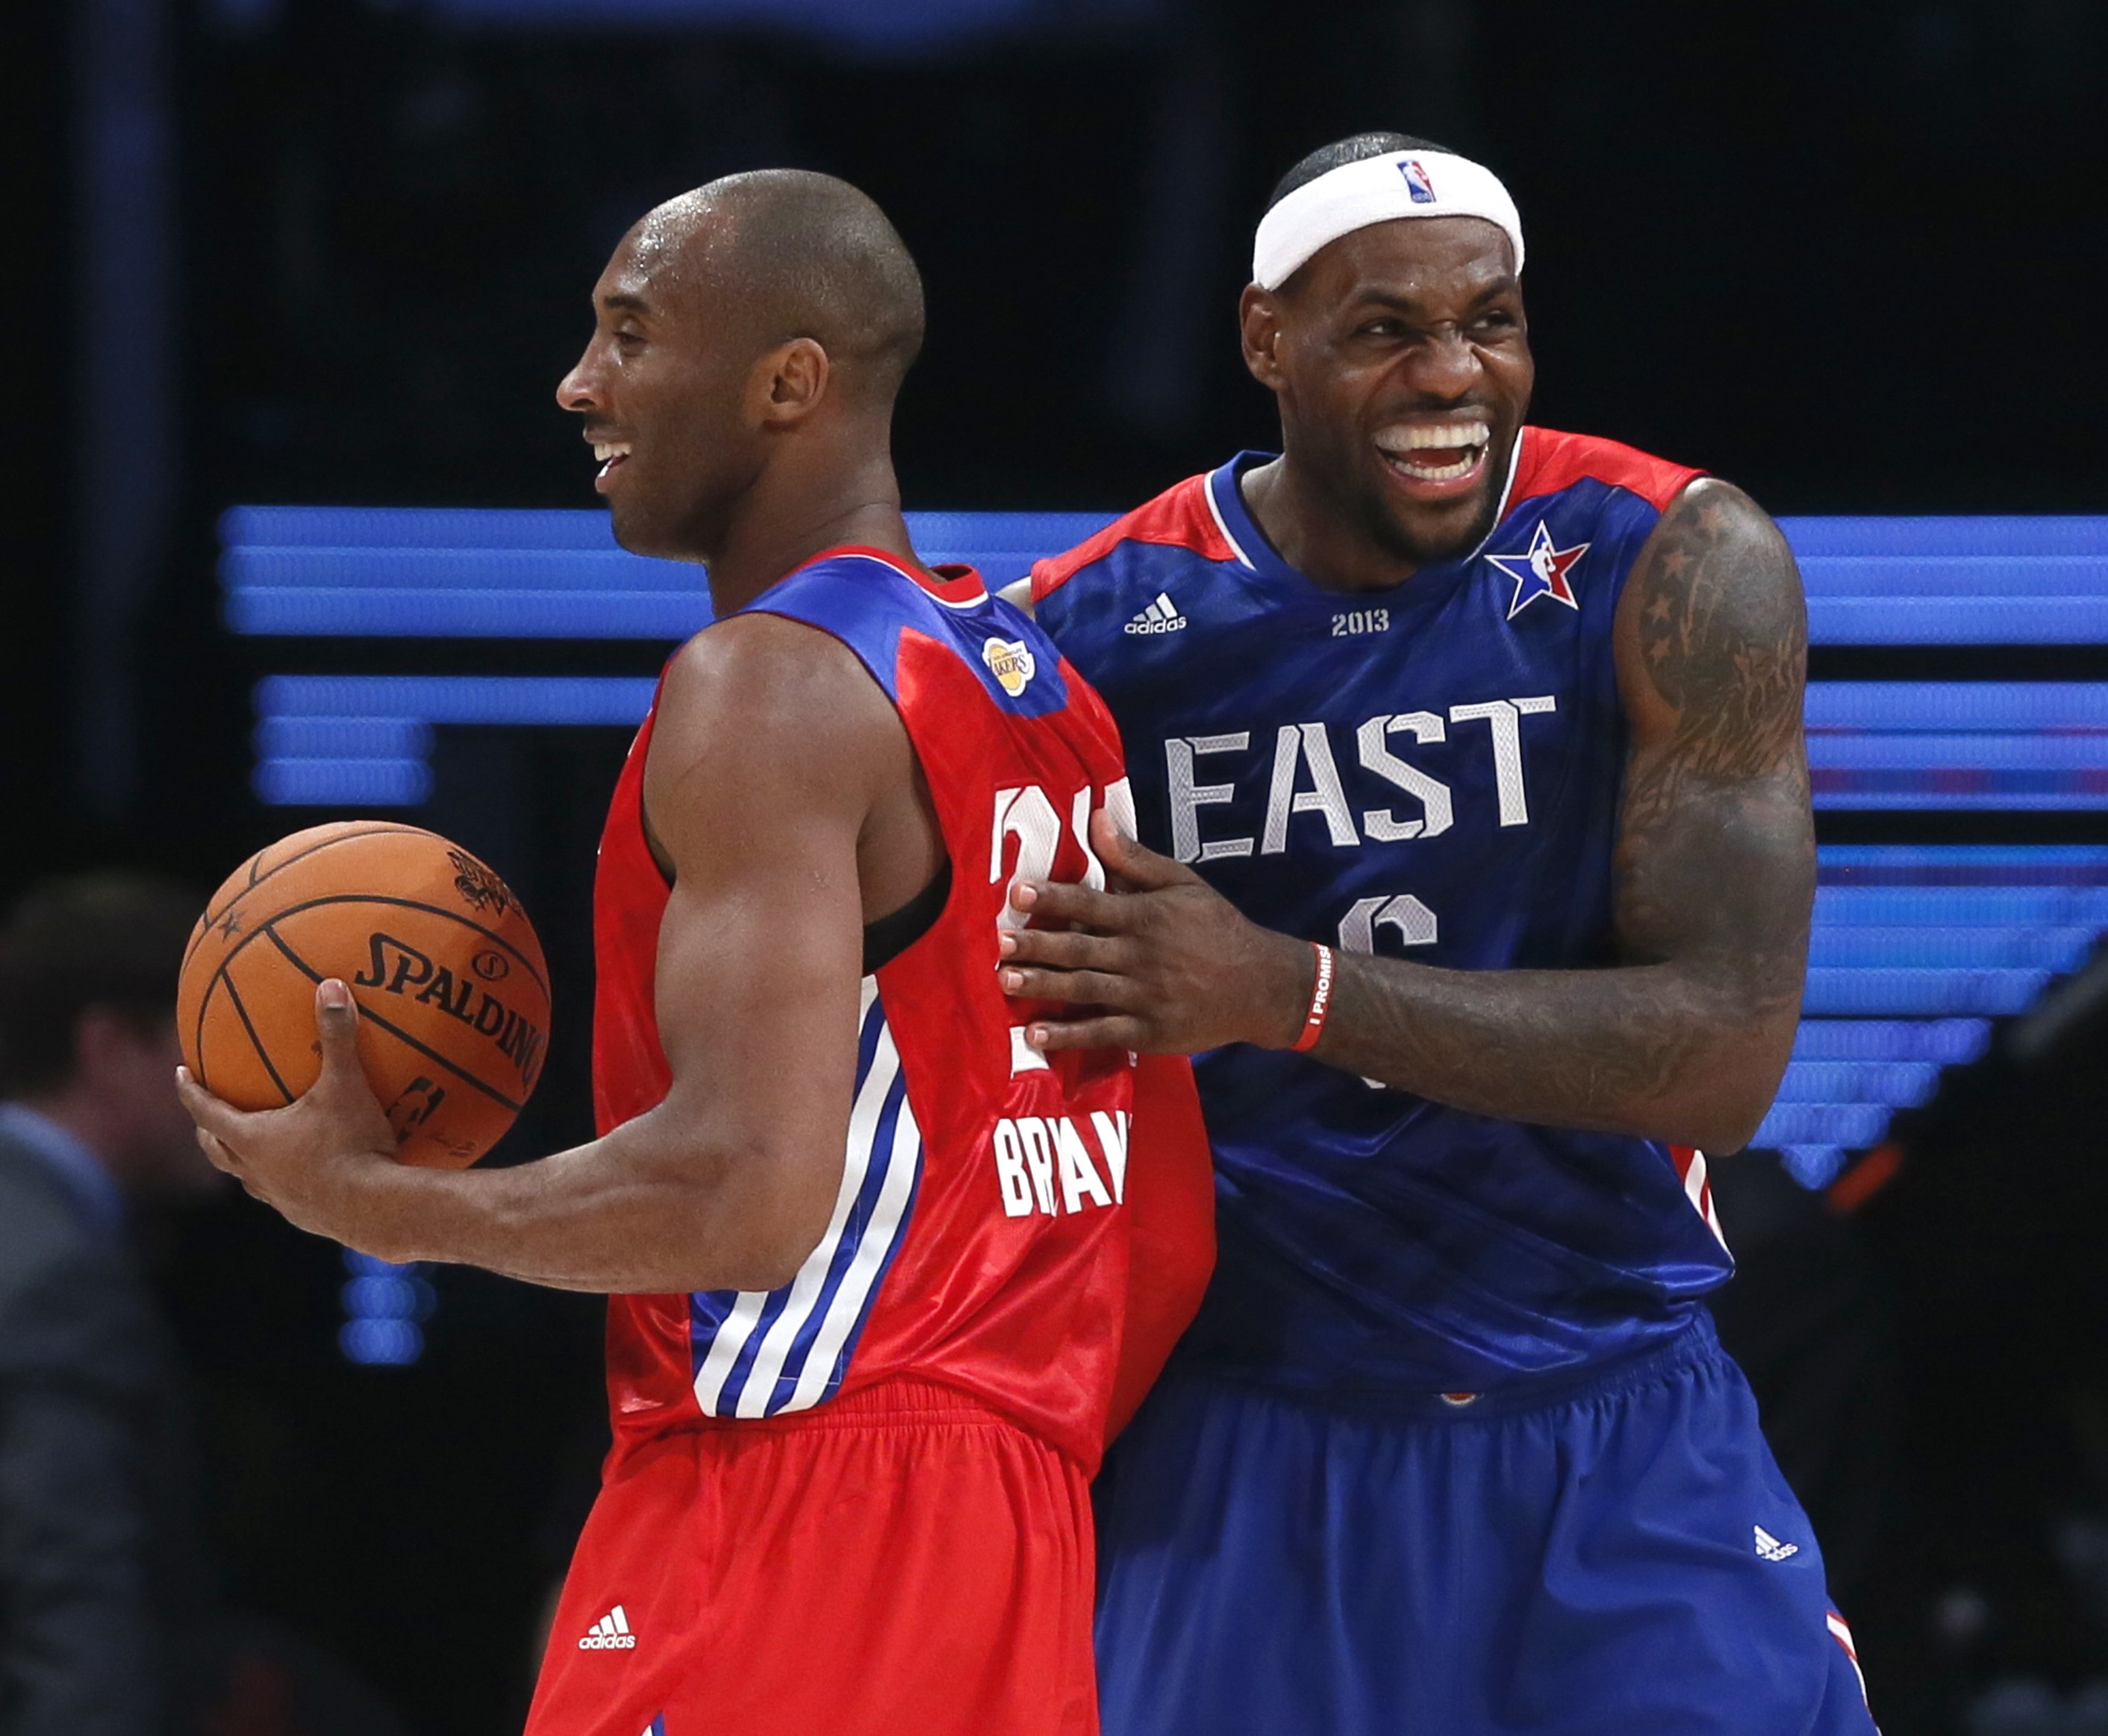 NBA All-Star Bryant of the Lakers and All-Star James of the Heat share a laugh during the NBA All-Star basketball game in Houston